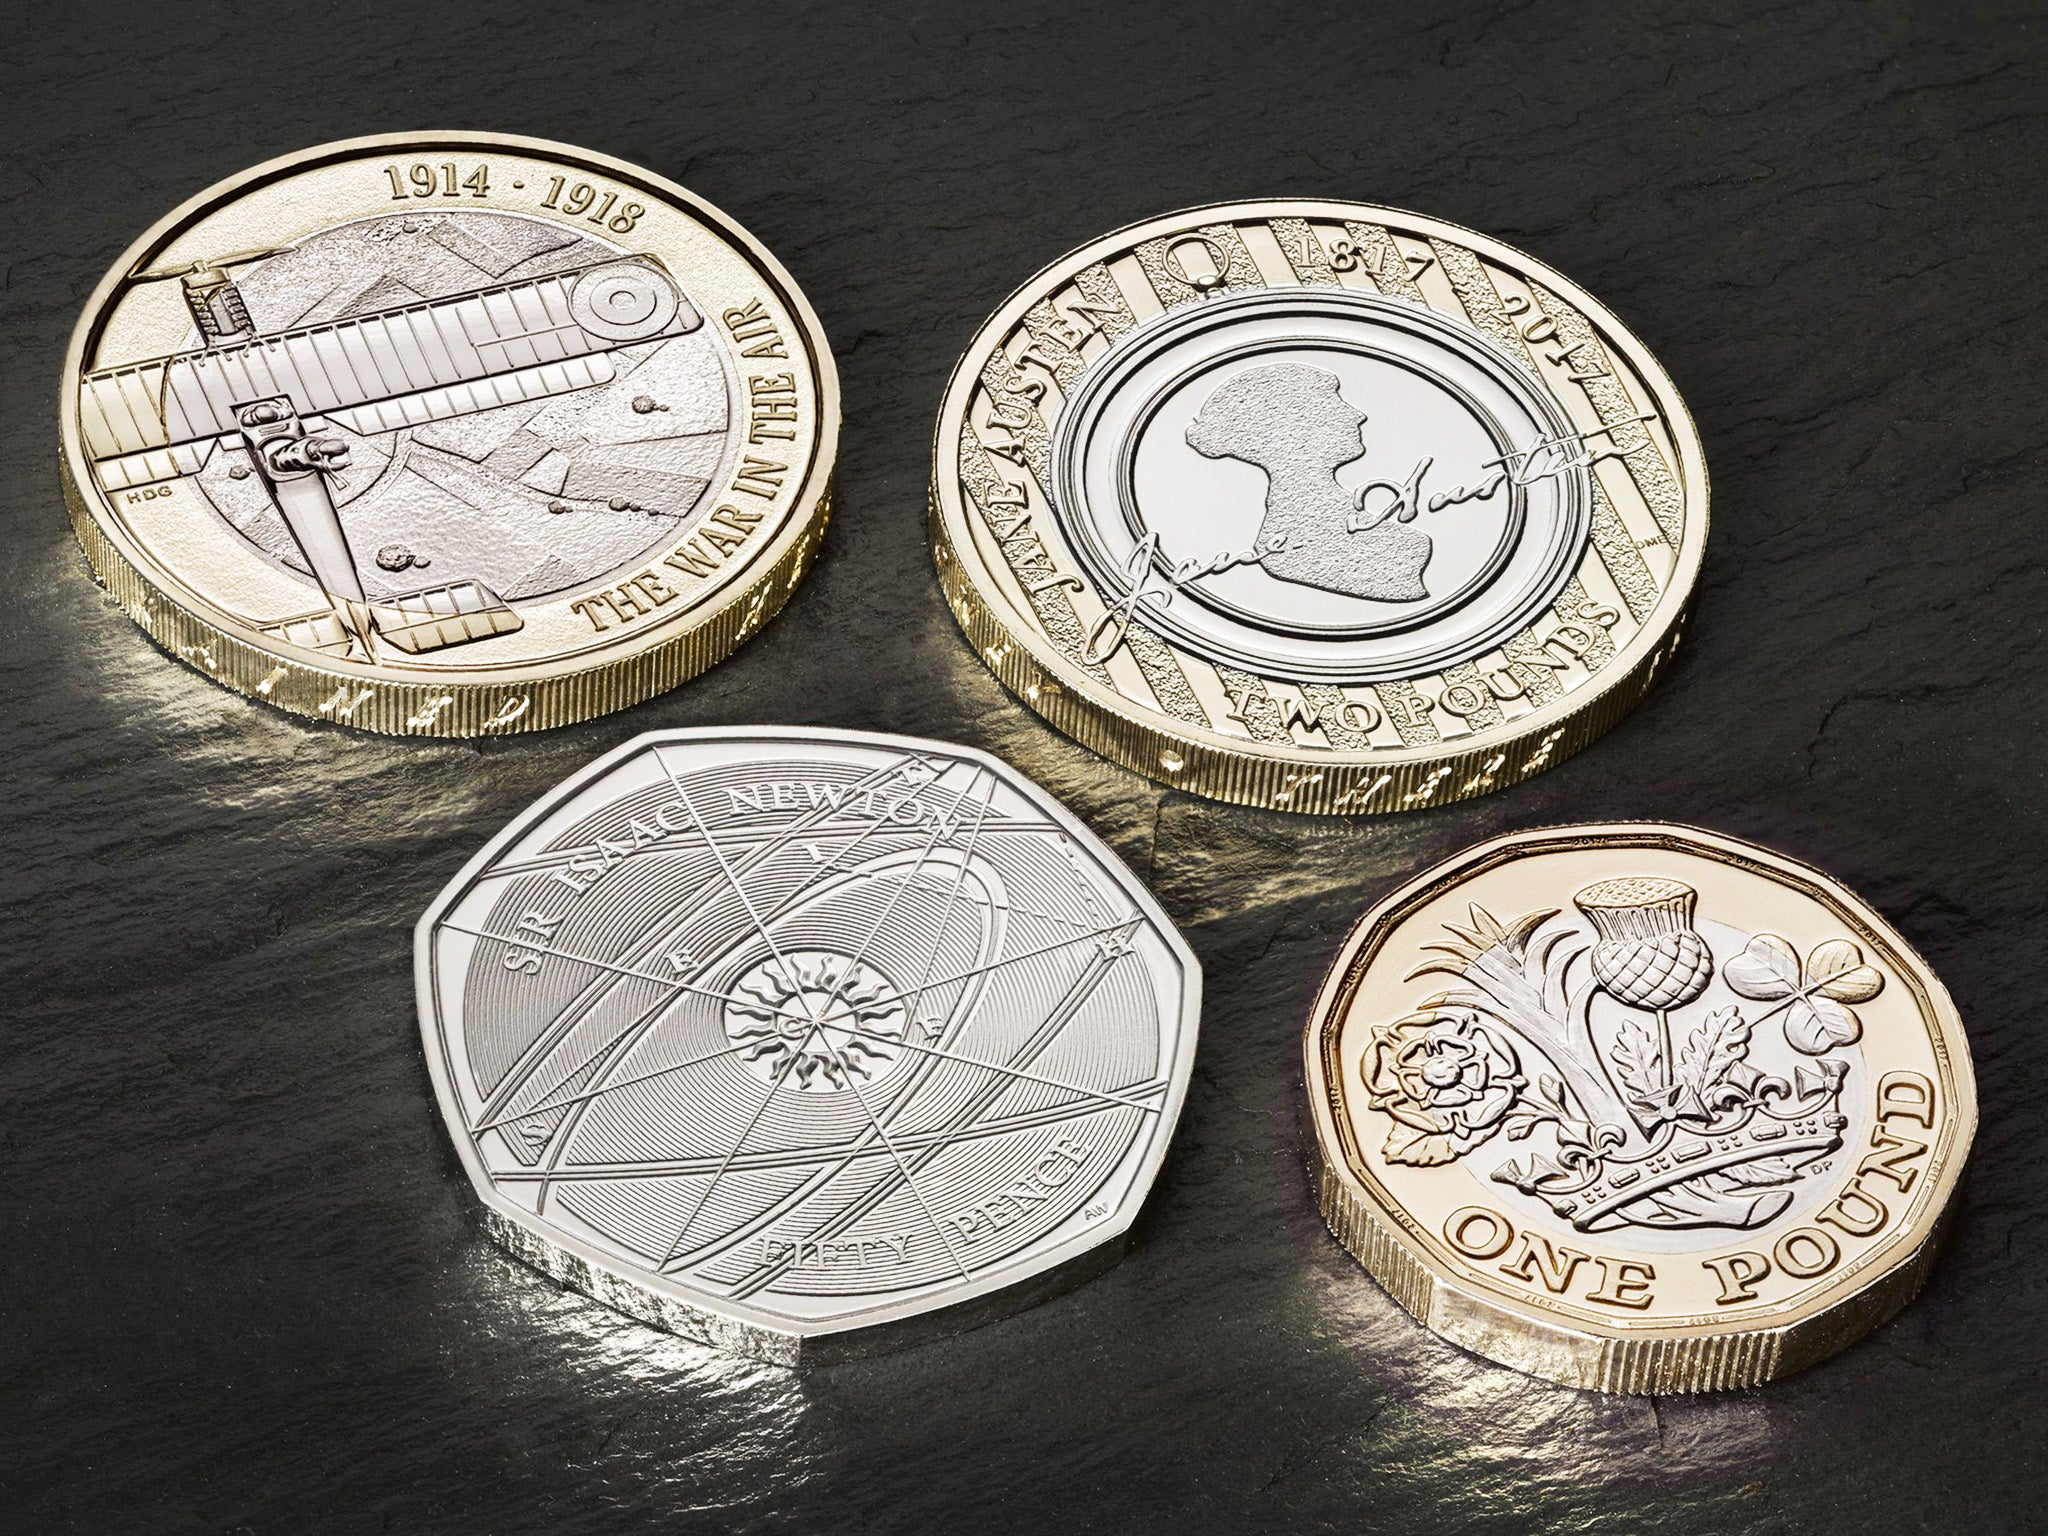 New 12 Sided 163 1 Coin Touted As Most Secure In The World